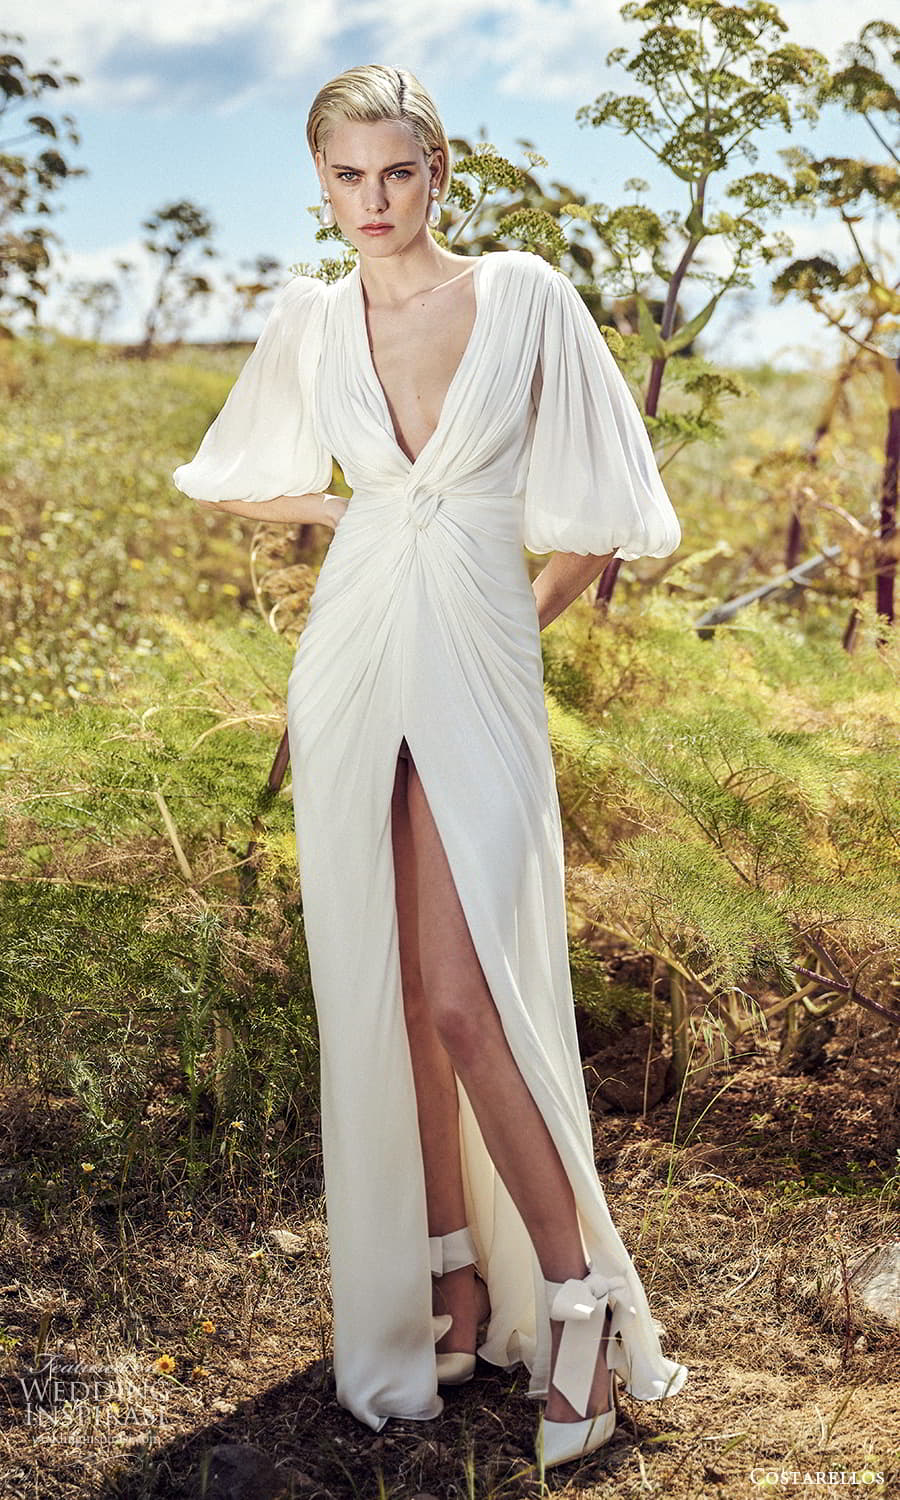 costarellos spring 2022 bridal elbow length puff sleeves plunging v neckline ruched bodice column wedding dress sweep train slit skirt (4) mv